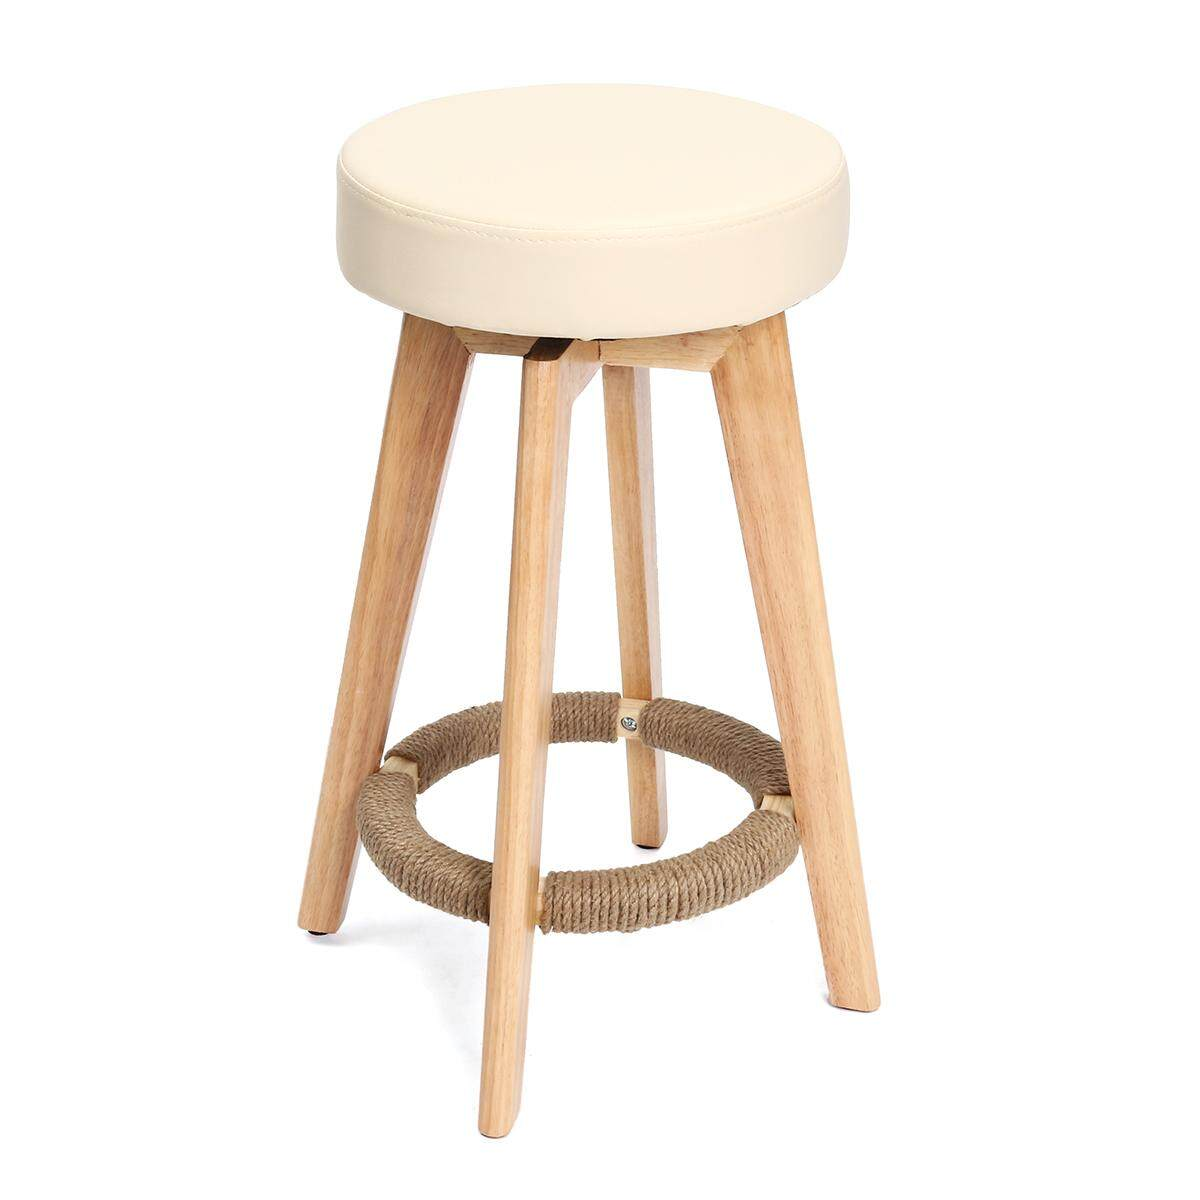 New Wooden Swivel Bar Stool Timber Kitchen Dining Chair Barstool PU Leather